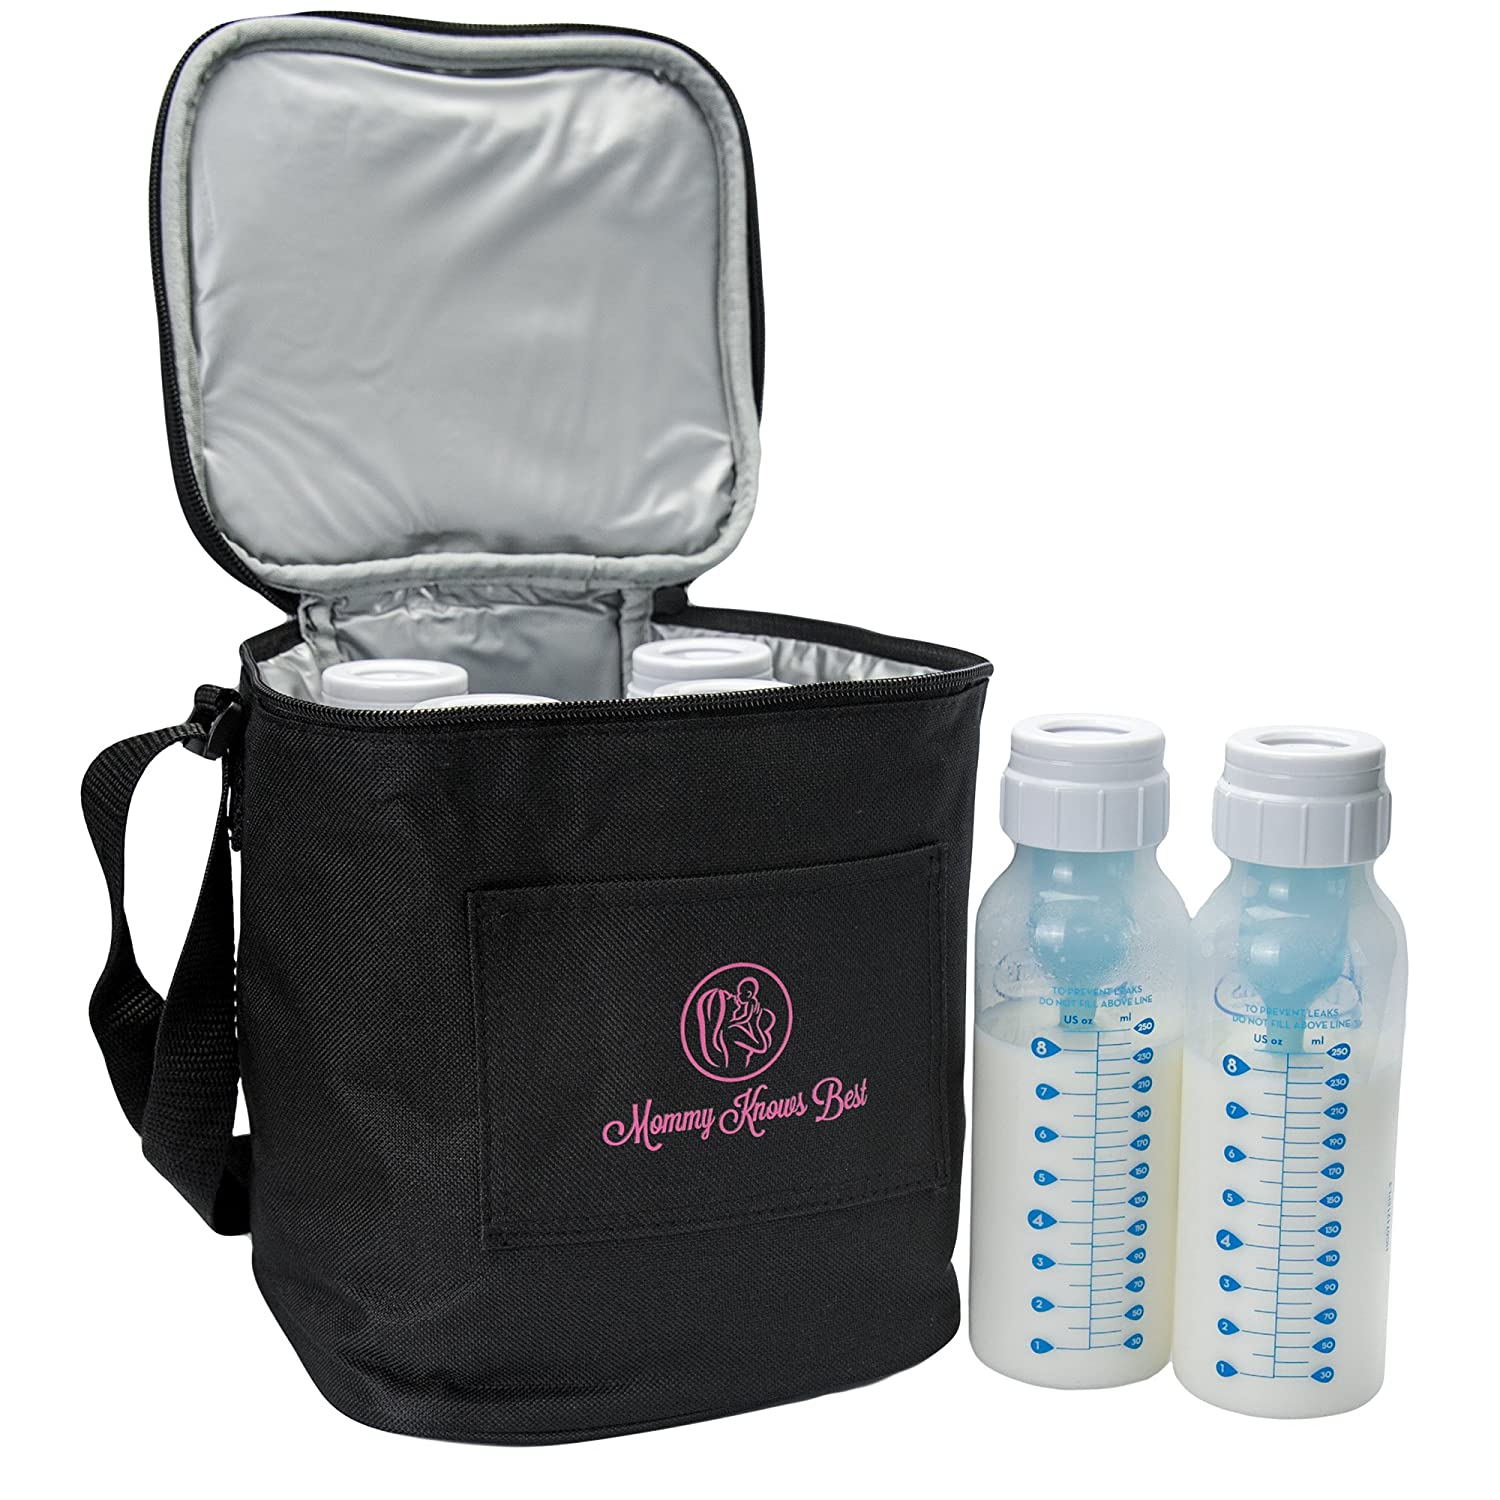 Extra Tall Breast Milk Baby Bottle Cooler Bag For Insulated Breastmilk Storage w/ Air Tight Design to Lock in the Cold & Preserve Important Nutrients for Your Baby (Fits up to 250 ml / 8 Oz. Bottles) Mommy Knows Best